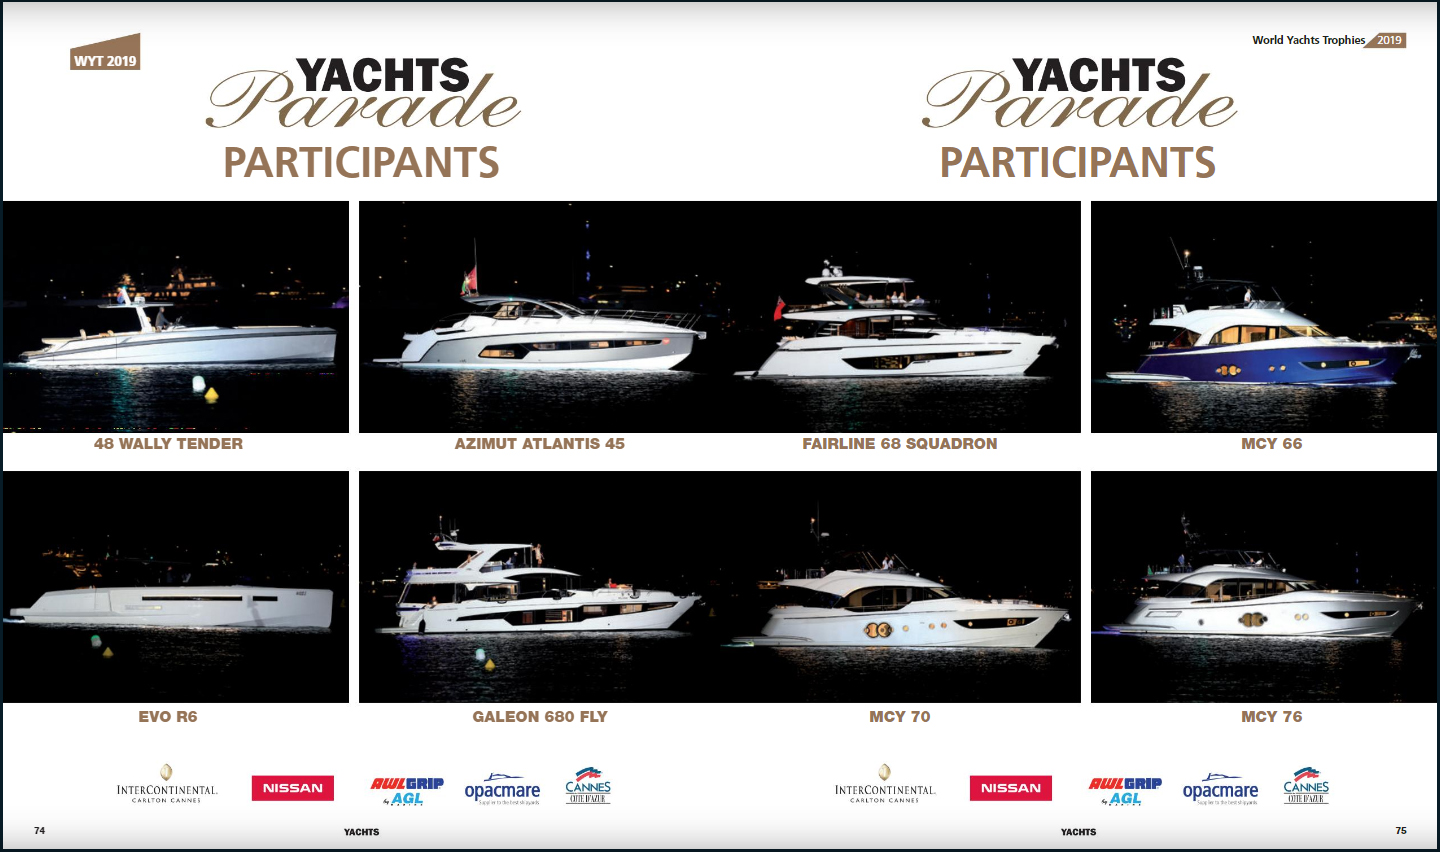 Yachts Europe Edition